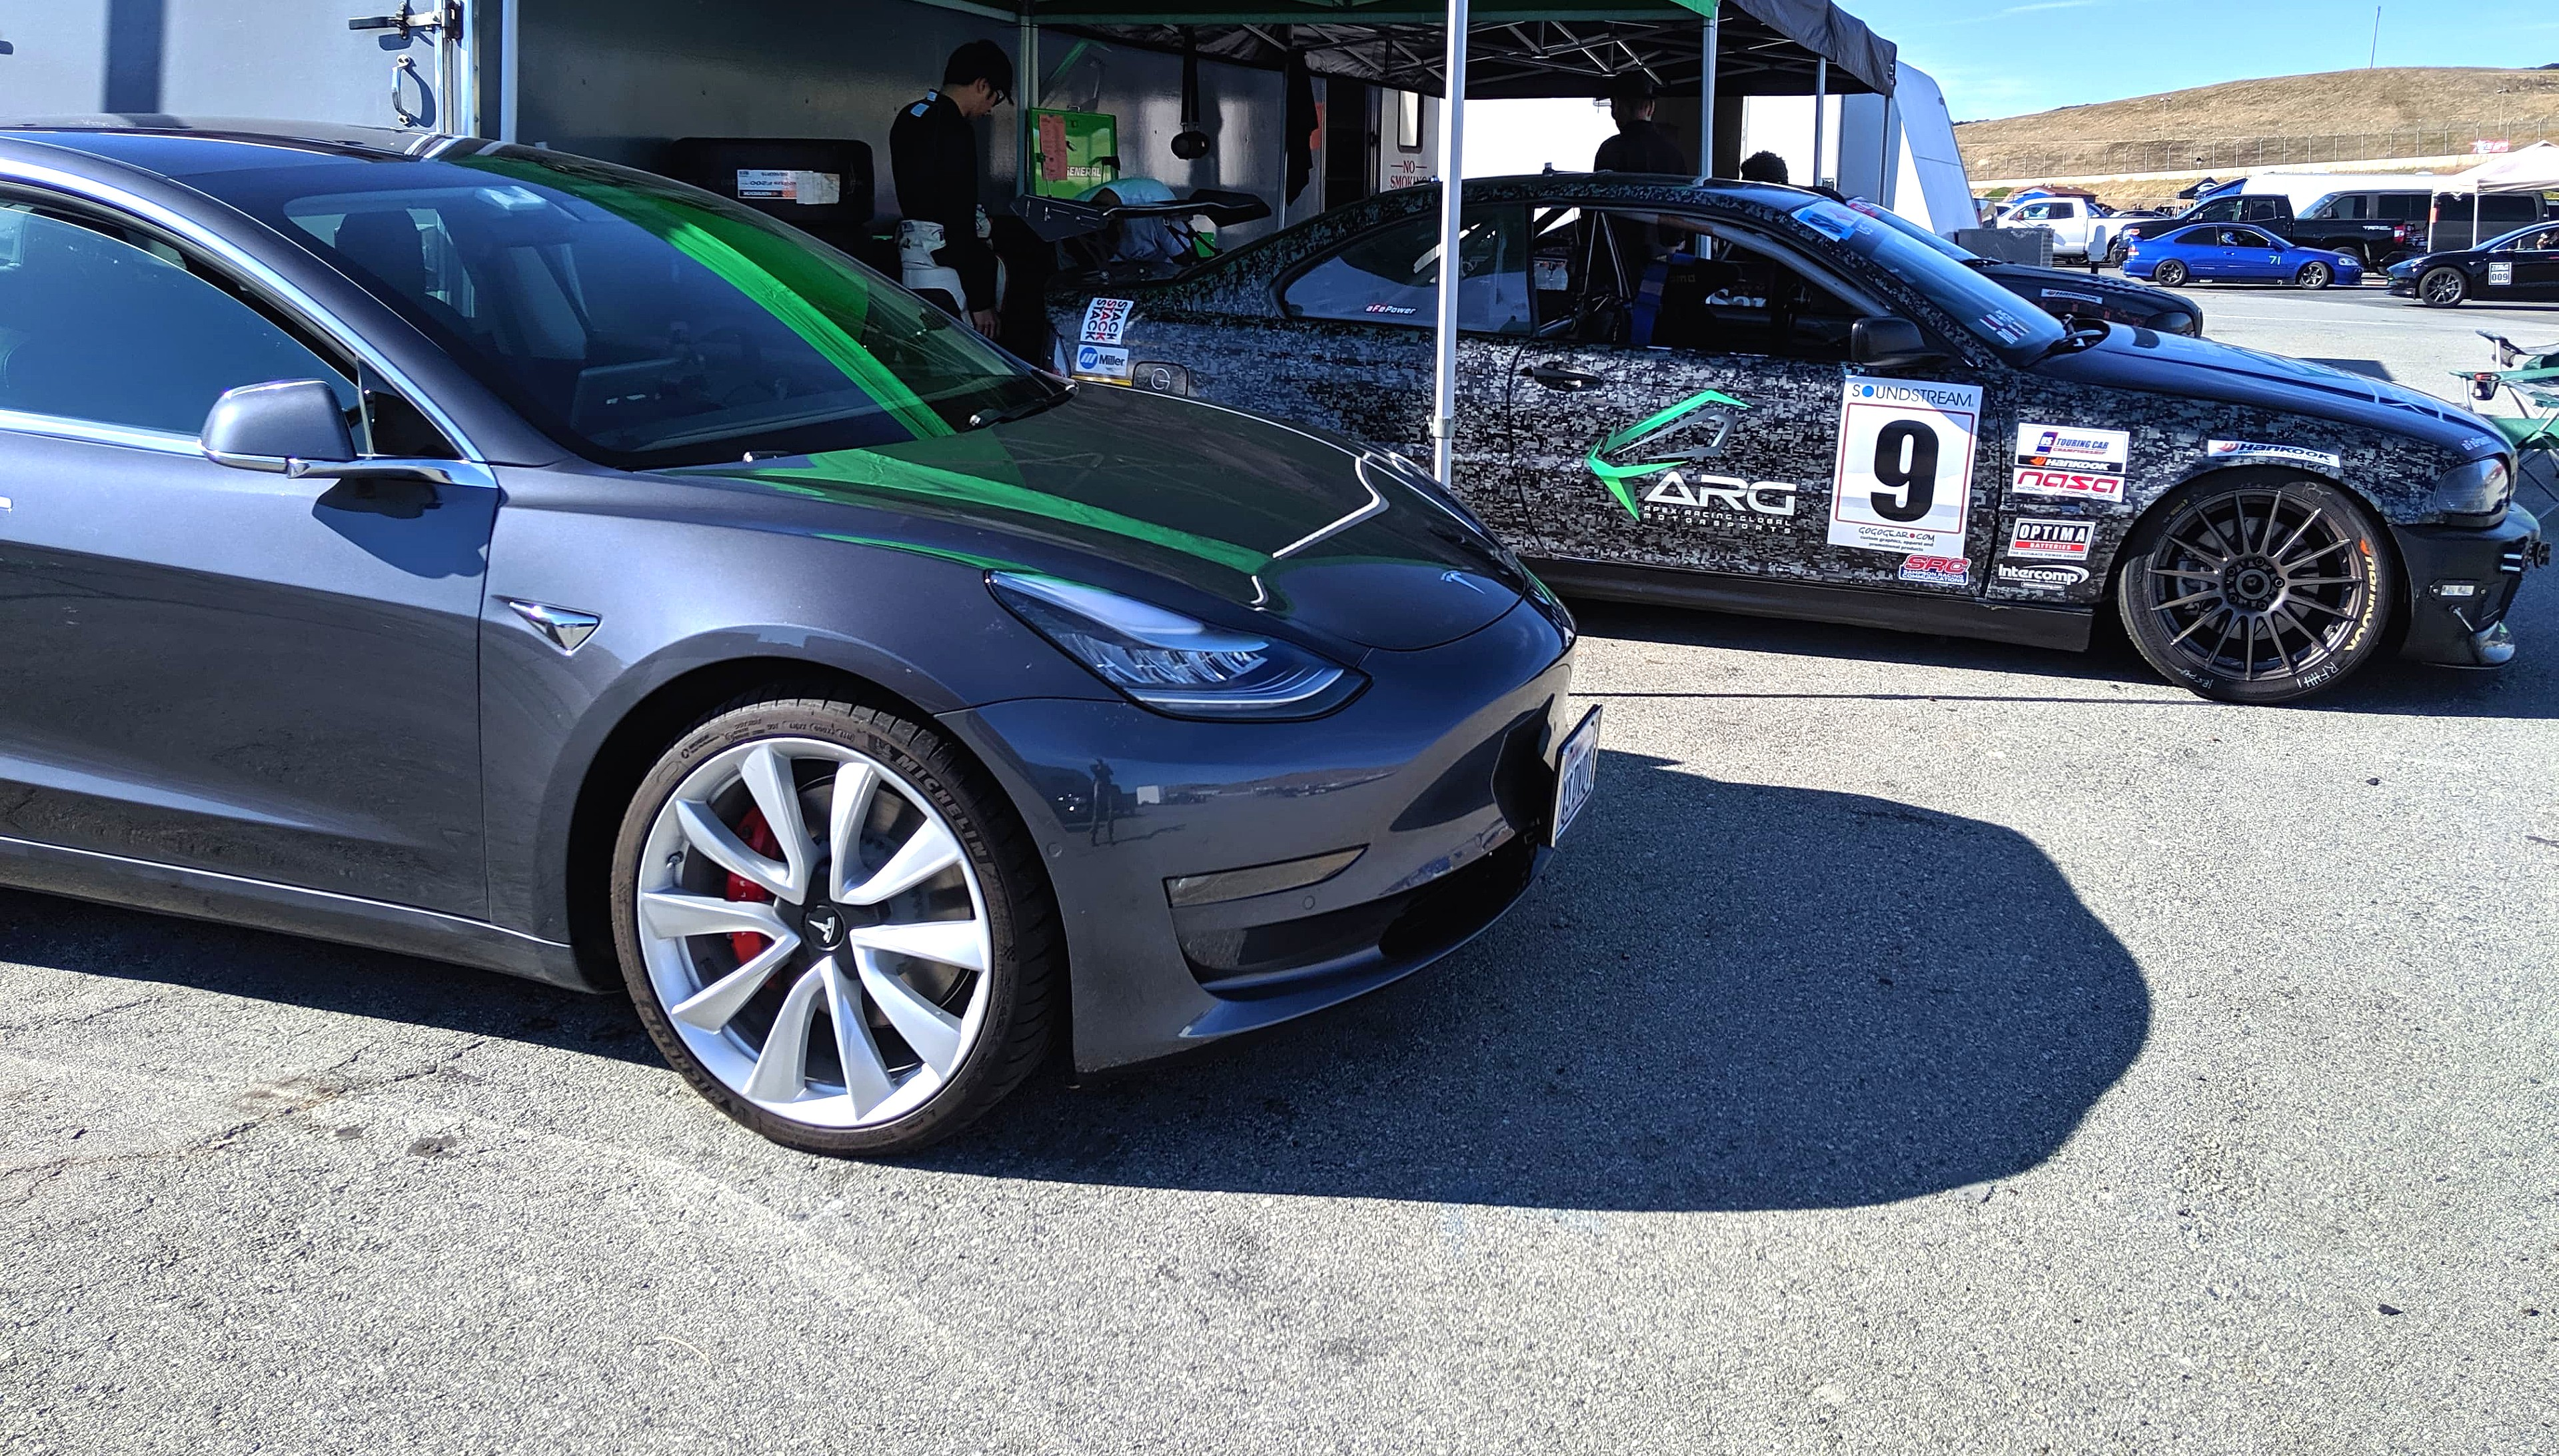 Tesla Model 3 makes BMW racer squeal in delight while riding